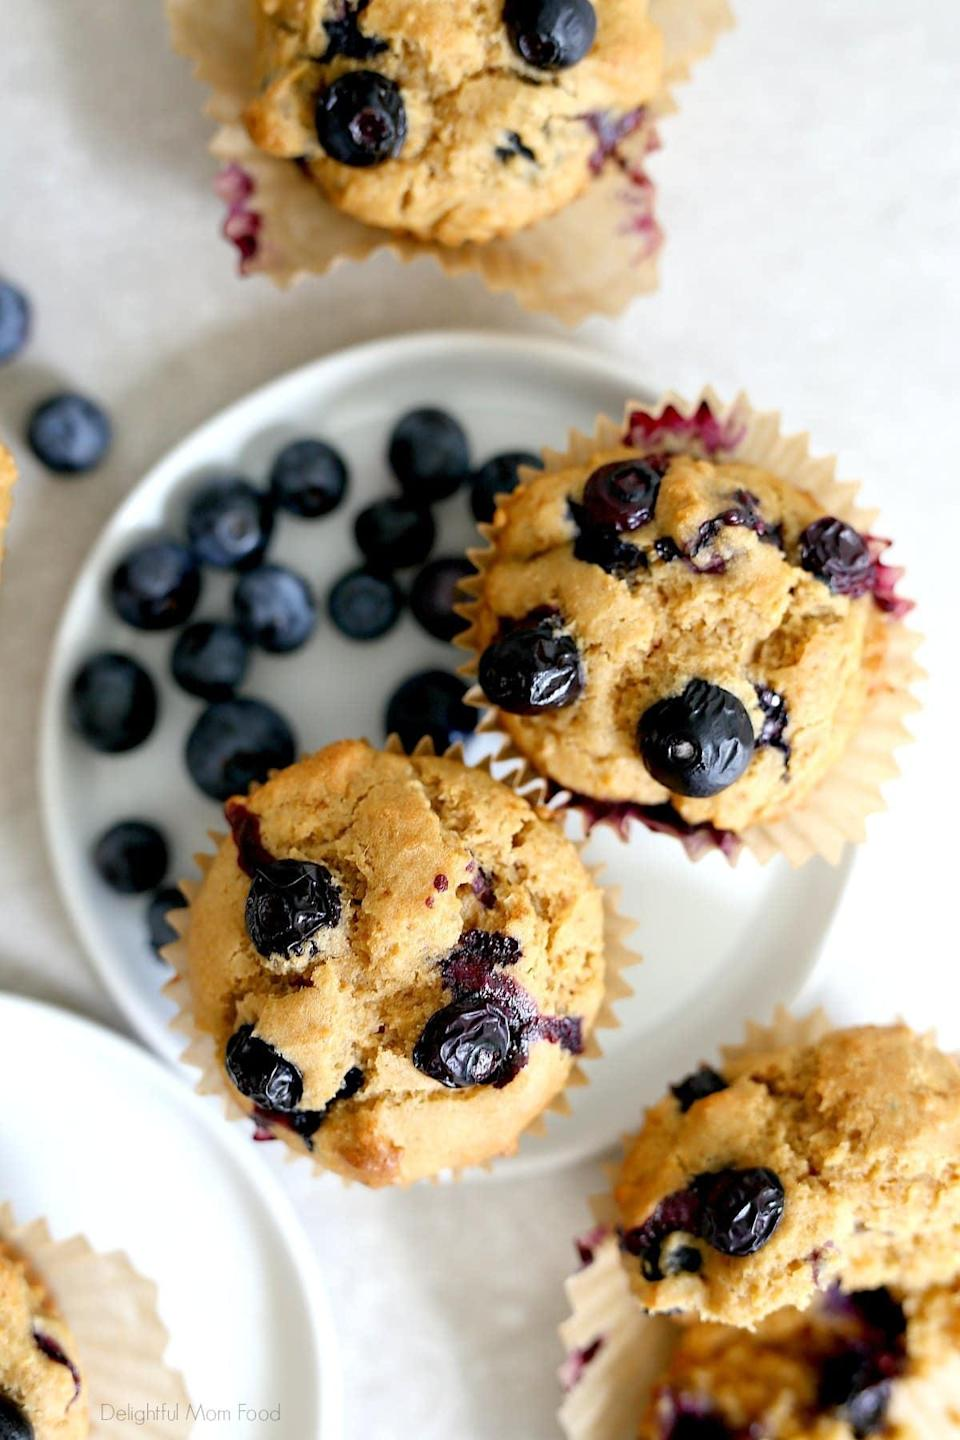 "<p>Your kids will probably ask for seconds after they try Delightful Mom Food's <a href=""https://delightfulmomfood.com/blueberry-muffins/"" class=""link rapid-noclick-resp"" rel=""nofollow noopener"" target=""_blank"" data-ylk=""slk:gluten-free blueberry muffins"">gluten-free blueberry muffins</a>. Fresh blueberries add a burst of flavor, applesauce makes them moist, and they're easy enough to whip up that the kids can help prep their own breakfast!</p>"